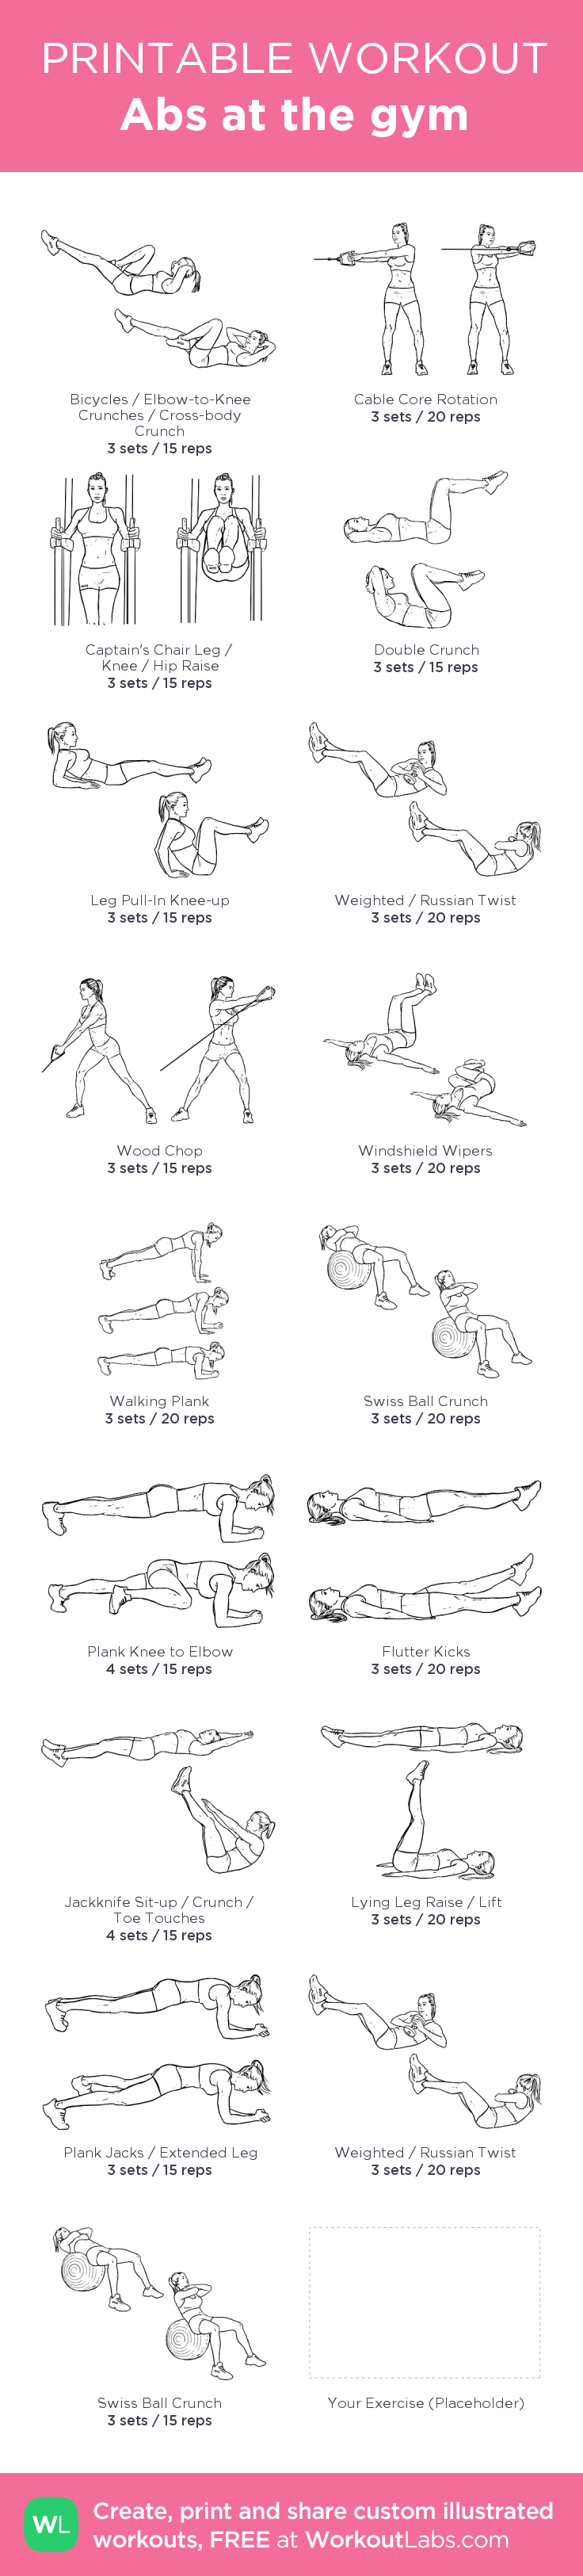 abs workout pdf